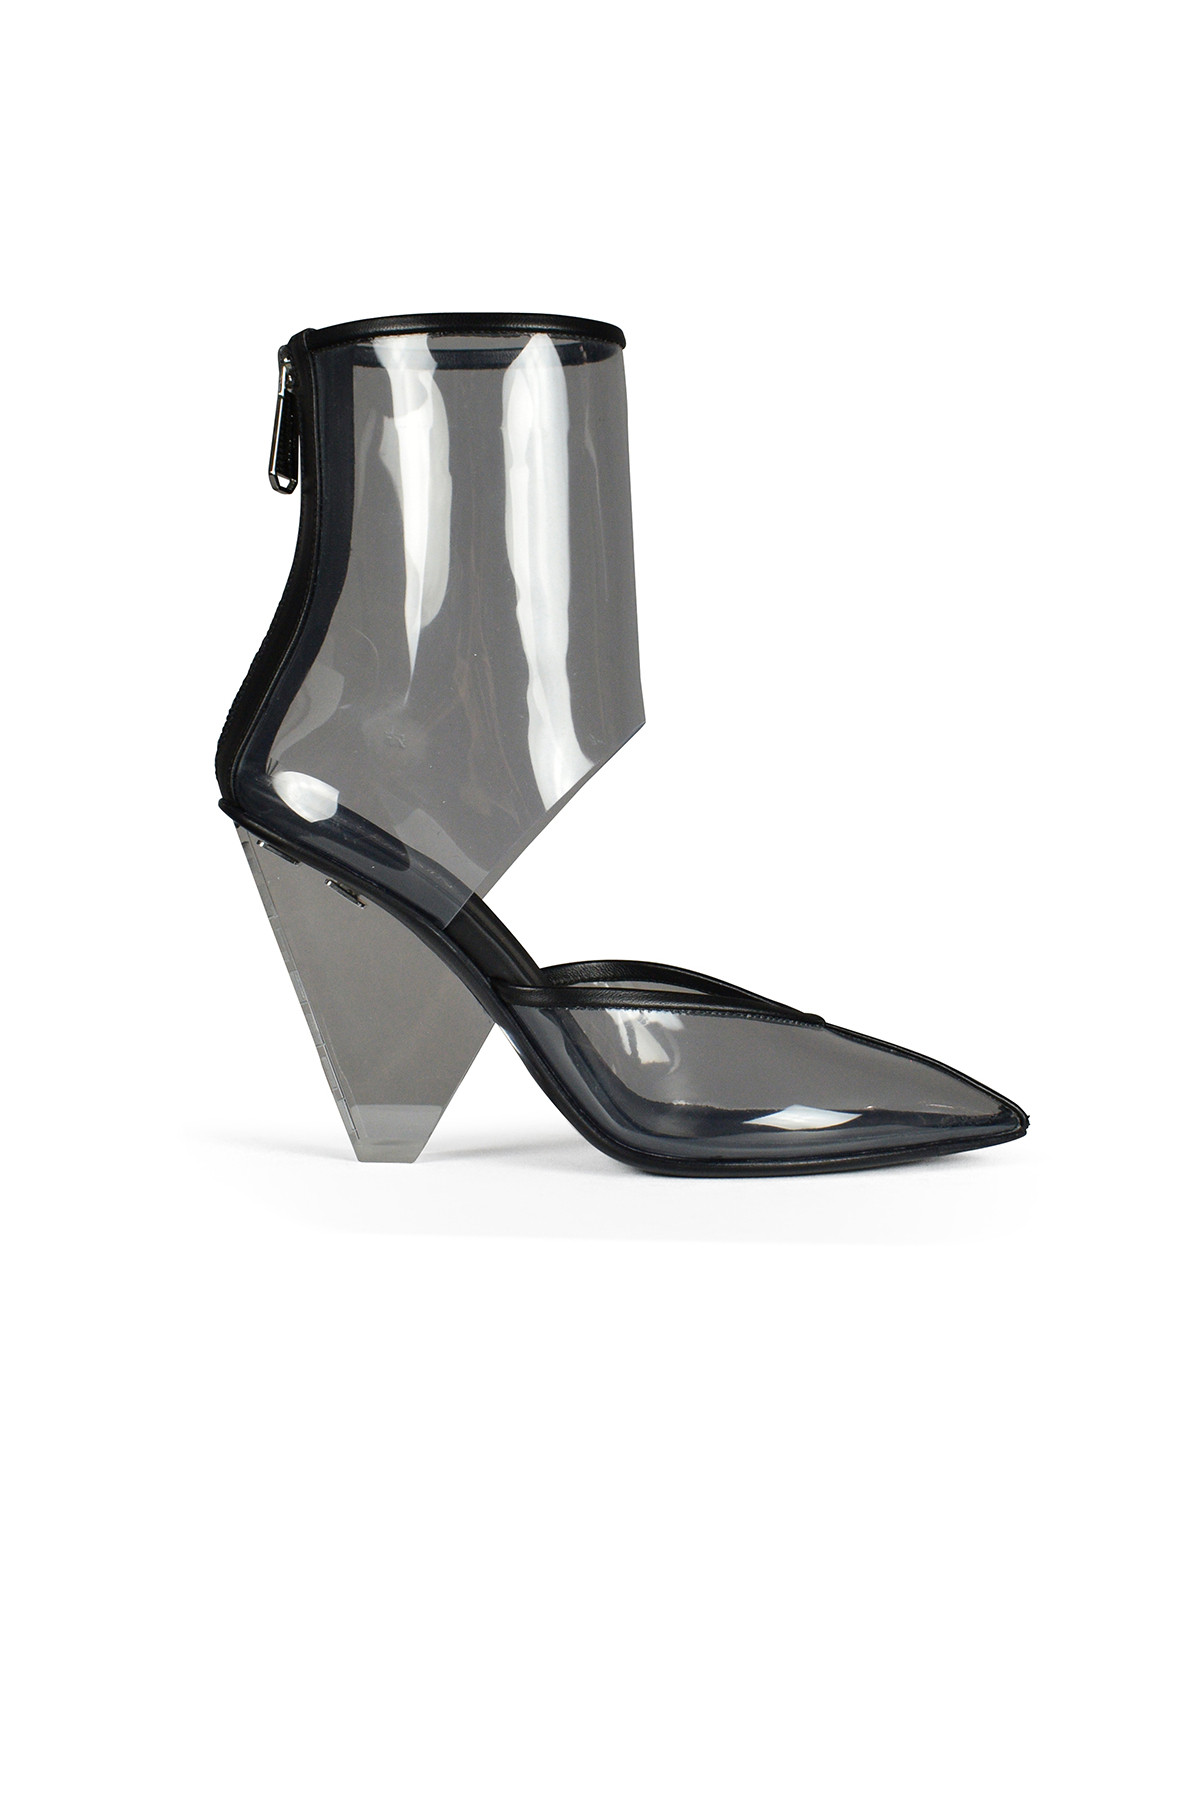 Balmain transparent ankle boots in black leather and PVC.